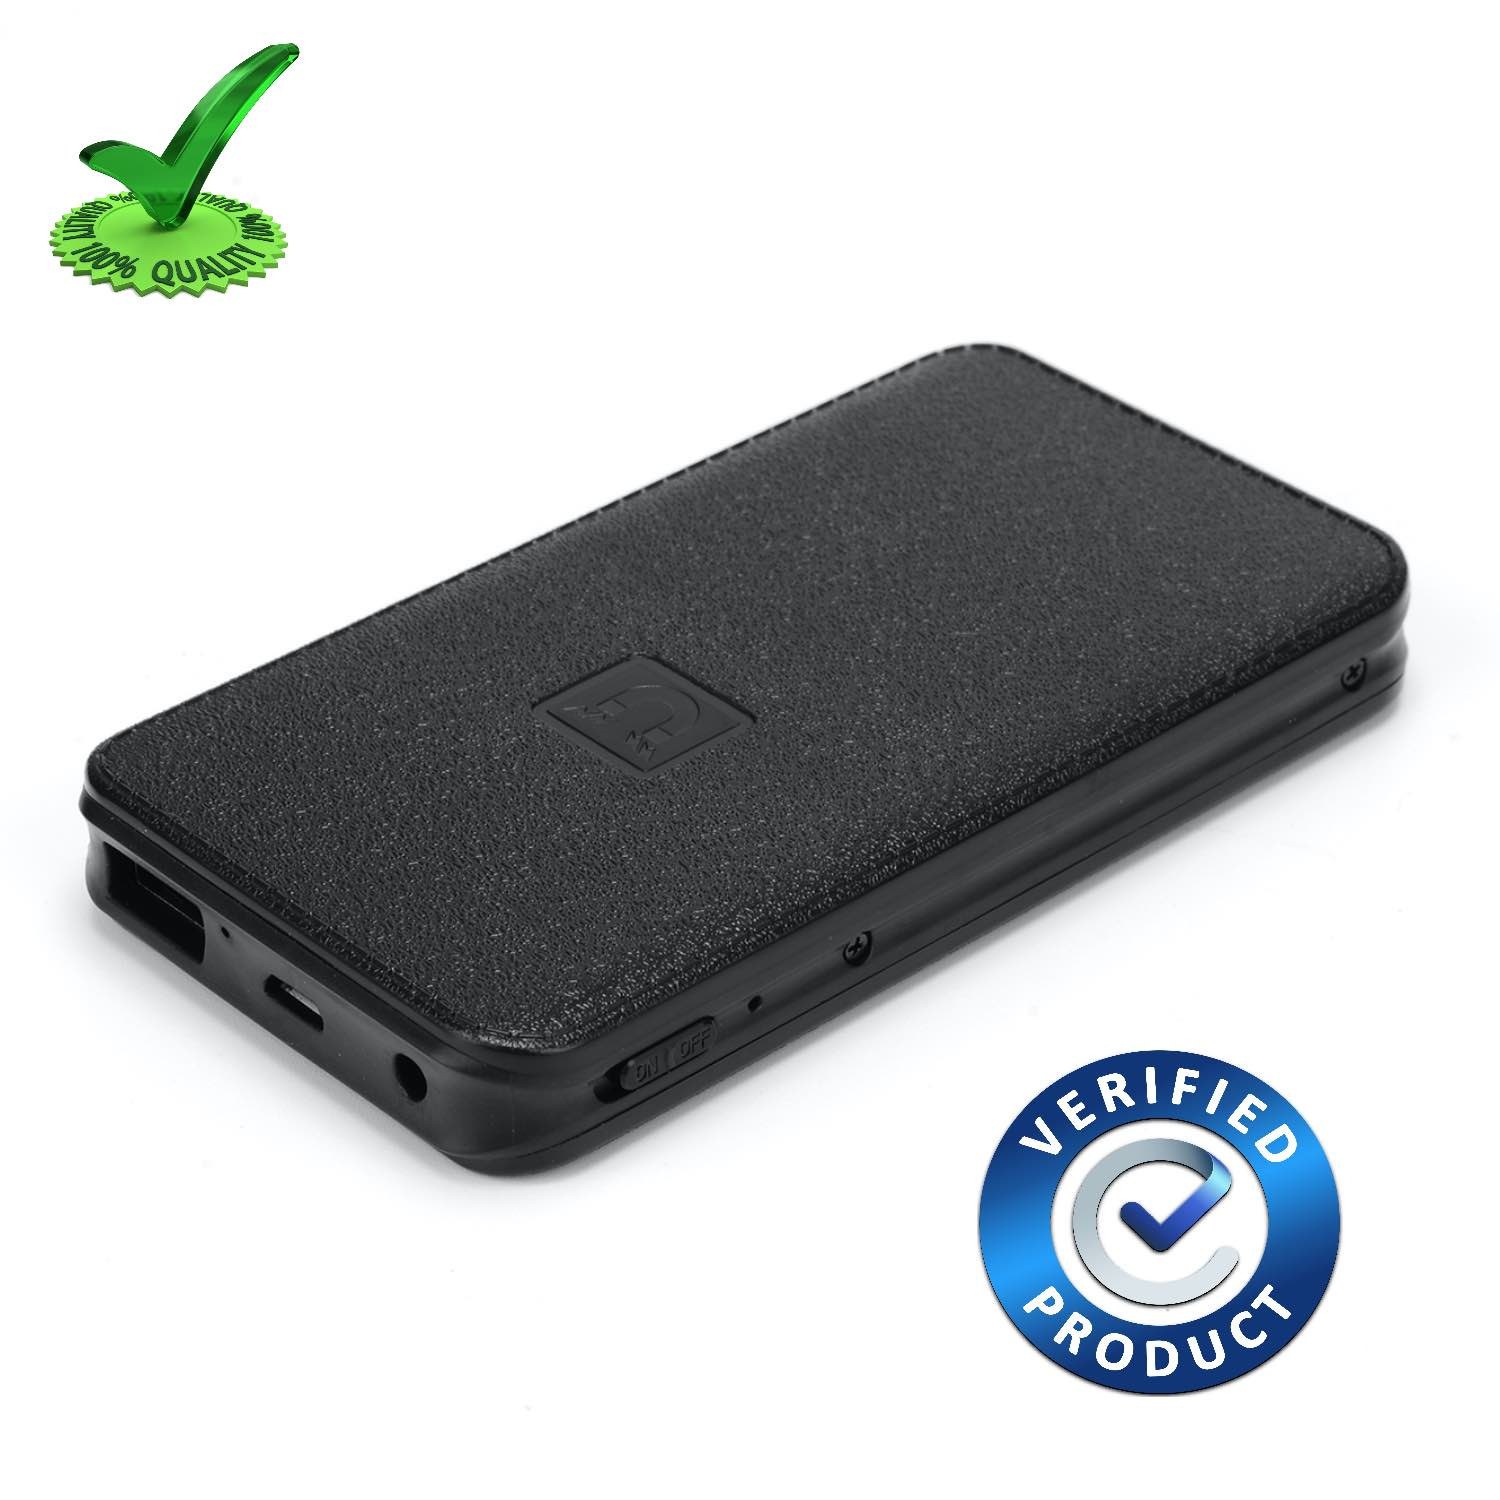 32GB Long Time Spy Hidden Voice Audio Song Recorder in Power Bank